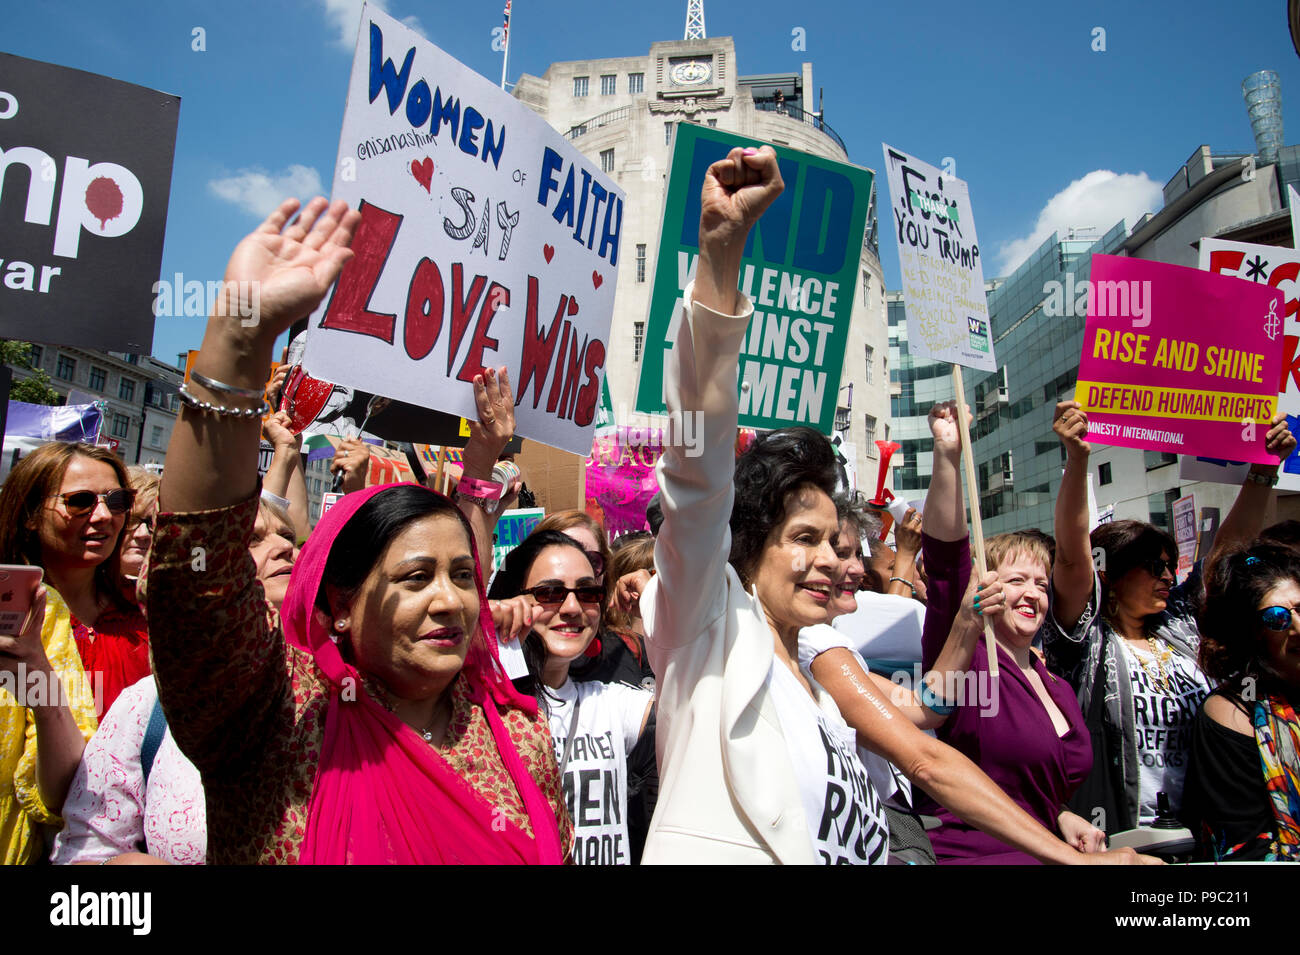 July 13th 2018.Central London. Demonstration against the visit of US President Donald Trump to England. A group of women, including Bianca Jagger, lea - Stock Image